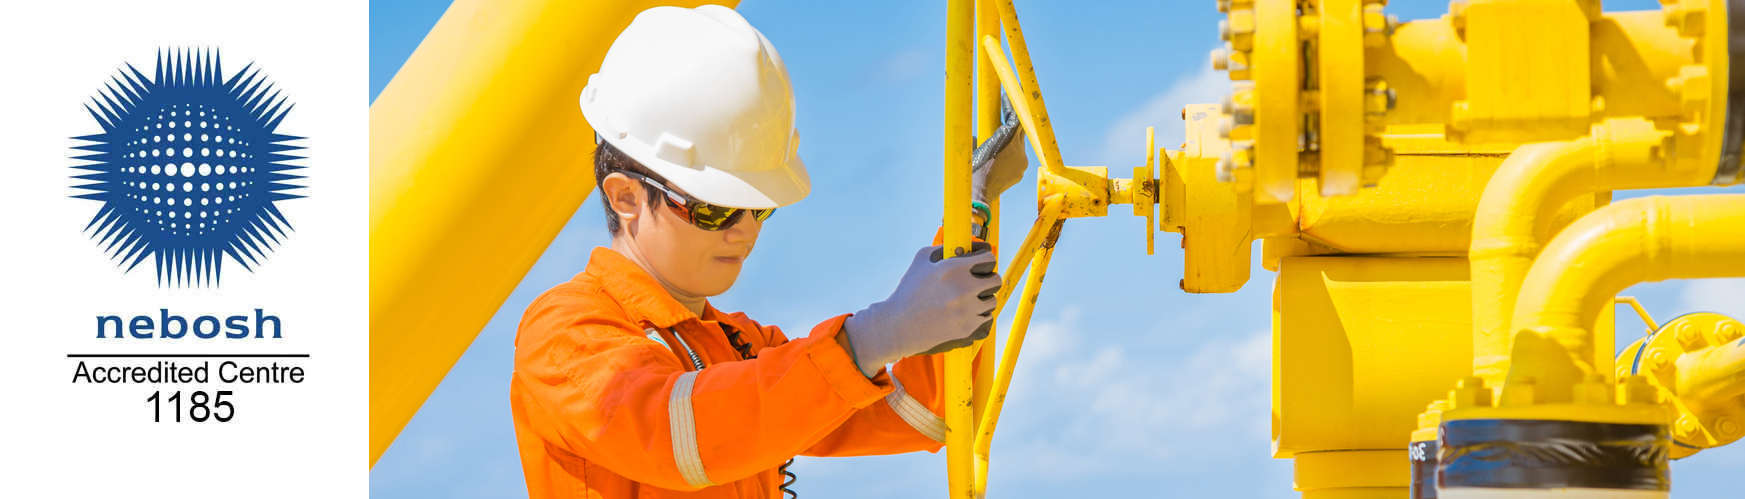 NEBOSH Occupational Health & Safety courses at just £345+VAT